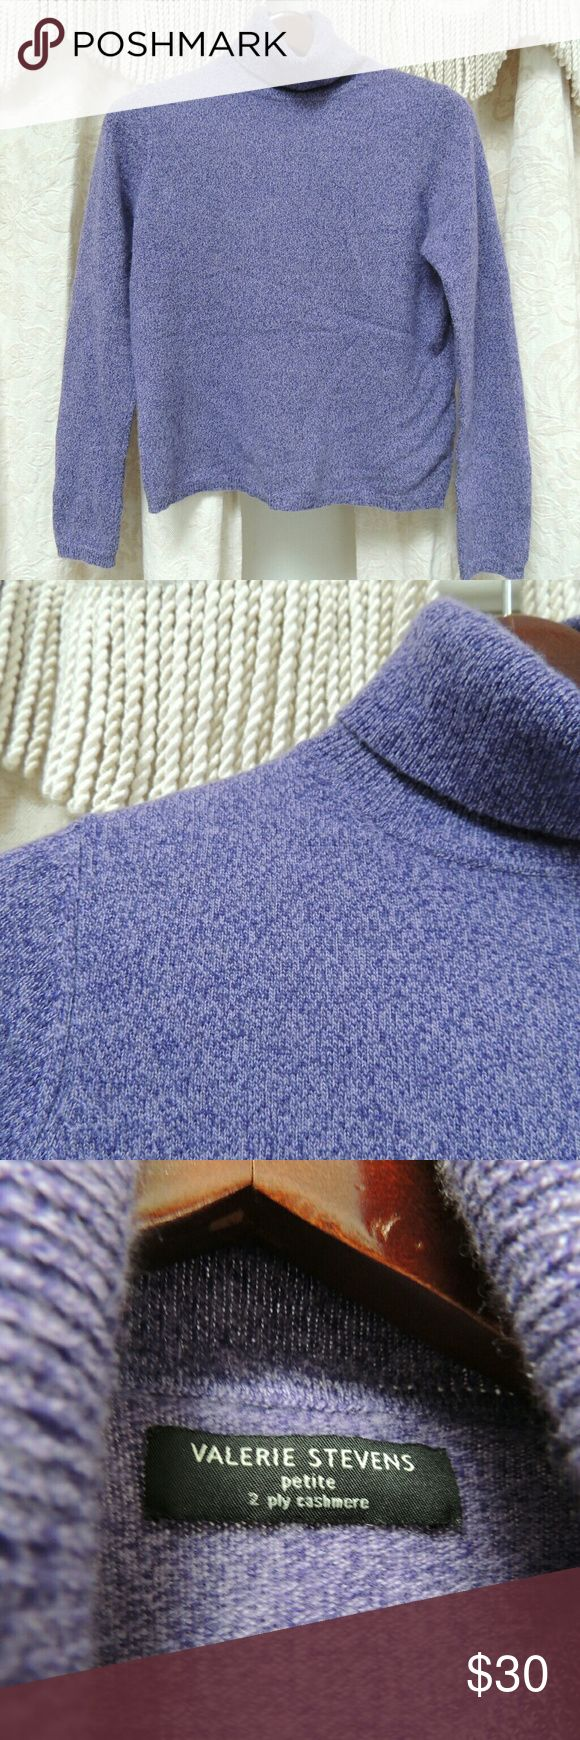 100% cashmere turtleneck sweater Purple cashmere turtleneck.  Very soft and cozy. Valerie Stevens Sweaters Cowl & Turtlenecks